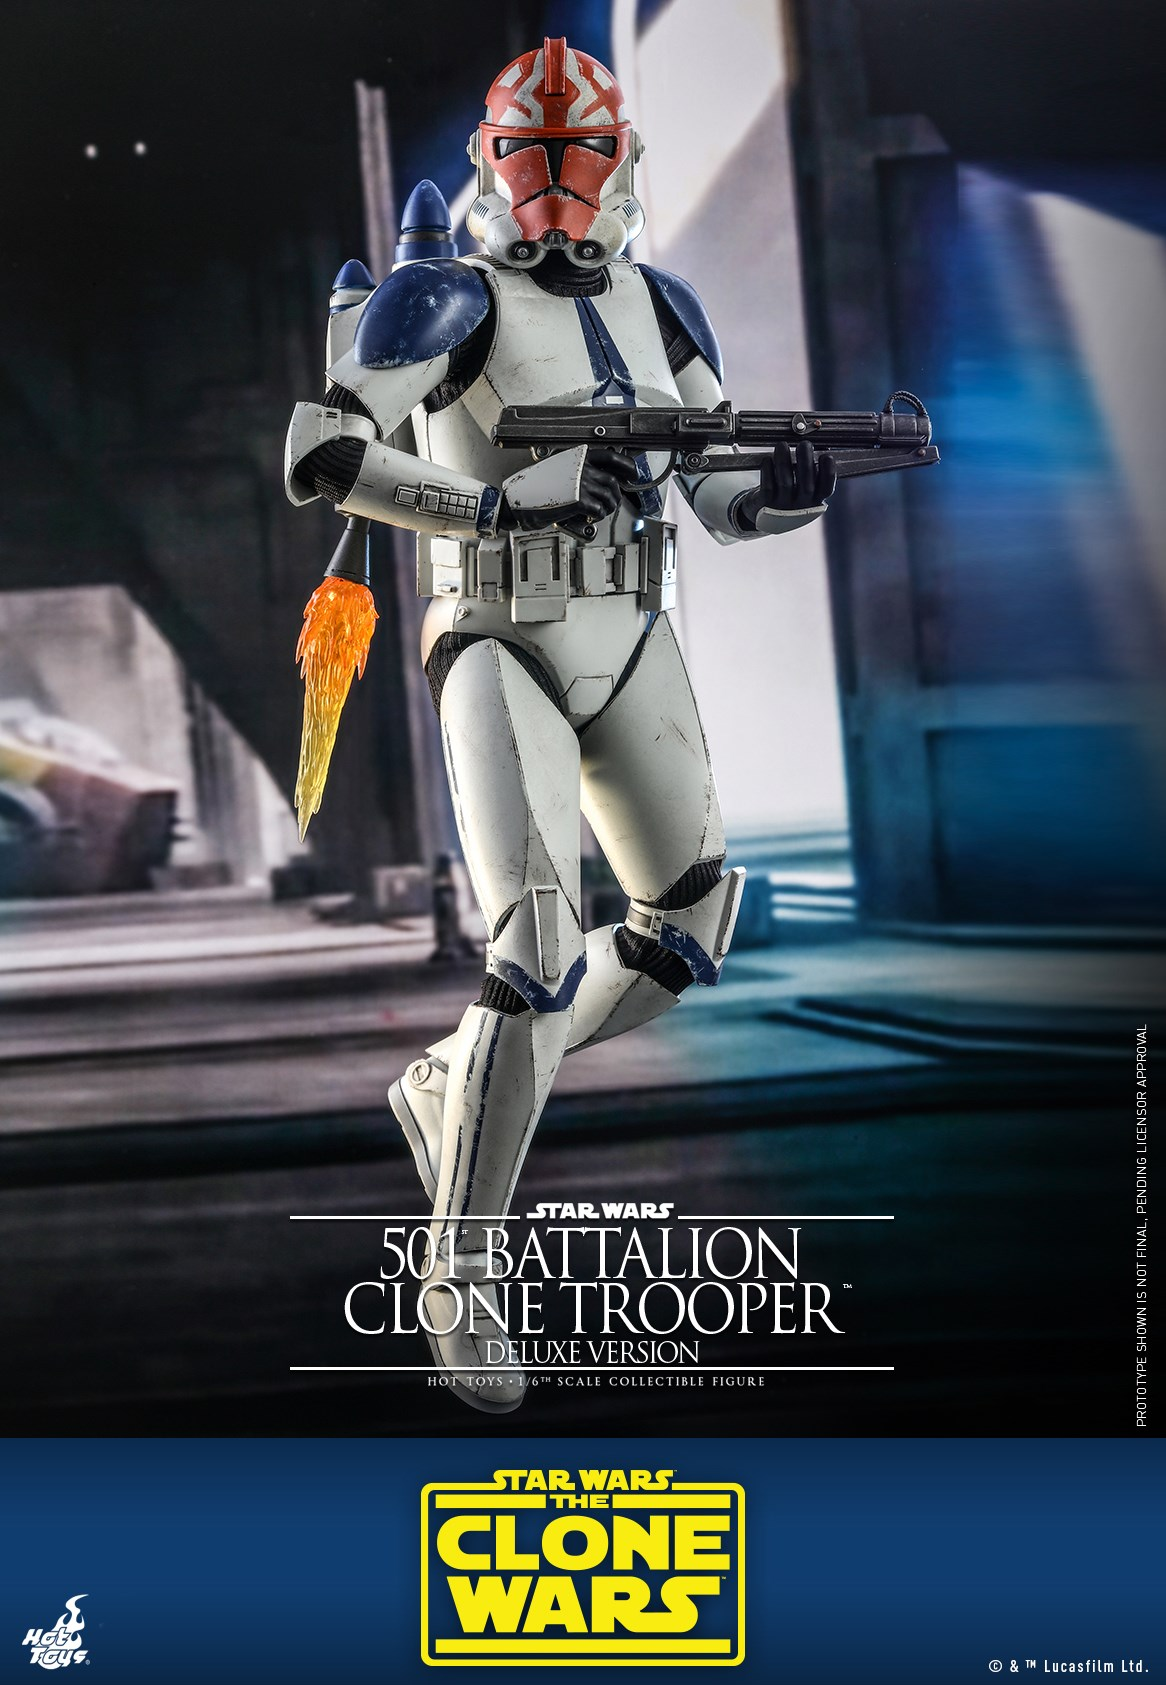 Pre-Order Hot Toys Star Wars 501st Battalion Clone Trooper DLX